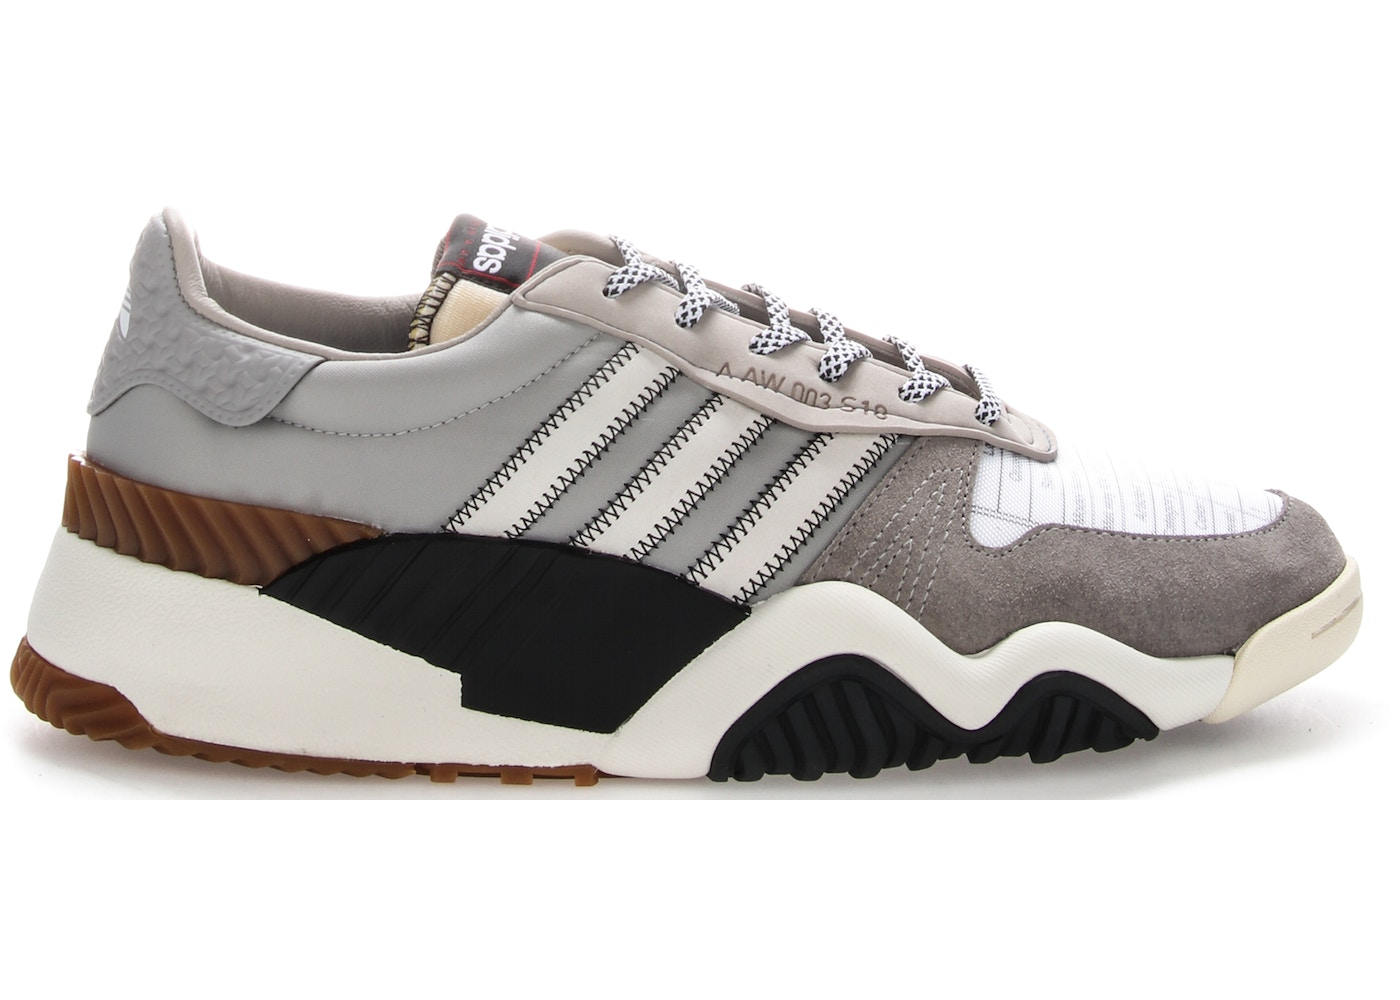 bfdda6bced550 adidas Turnout Trainer Alexander Wang Light Brown - B43589